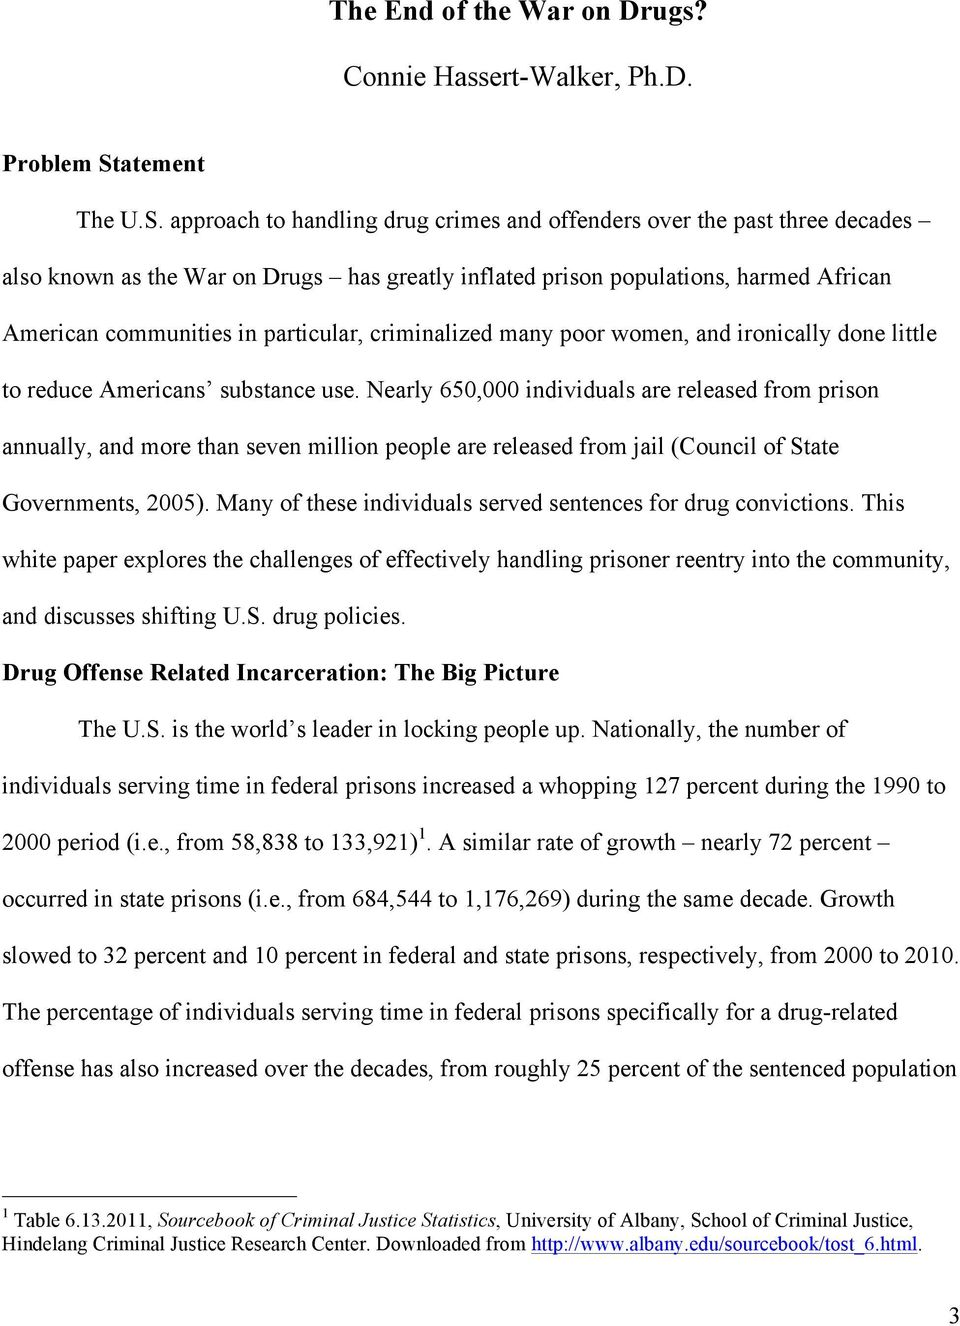 approach to handling drug crimes and offenders over the past three decades also known as the War on Drugs has greatly inflated prison populations, harmed African American communities in particular,